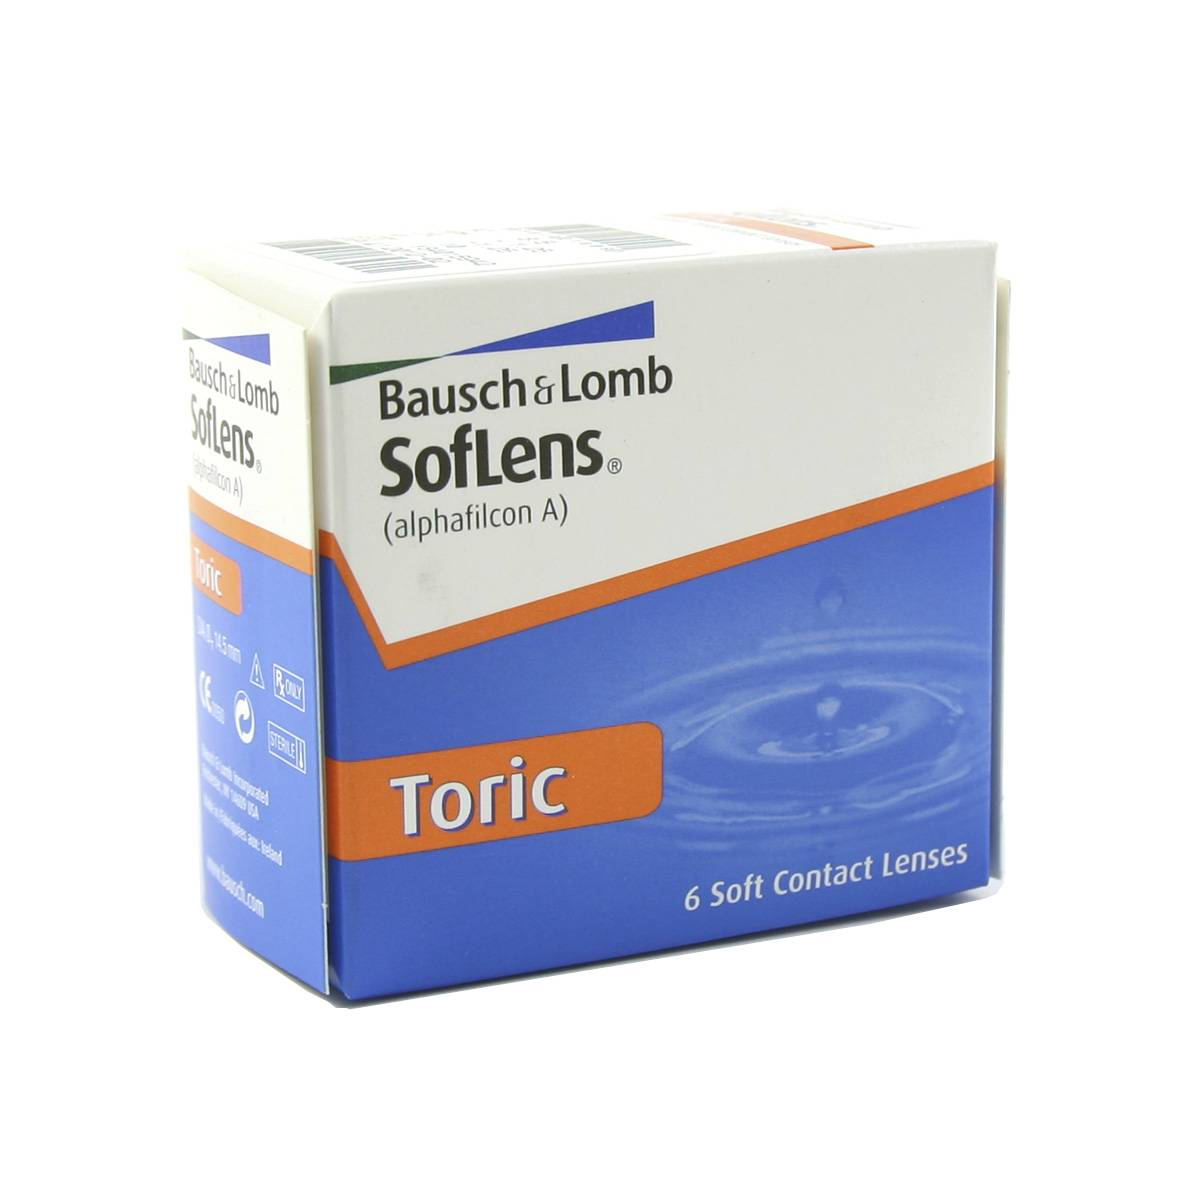 Bausch & Lomb Soflens Toric (6 Contact Lenses), Bausch & Lomb, Toric Monthly Lenses for Astigmatism, Alphafilcon A